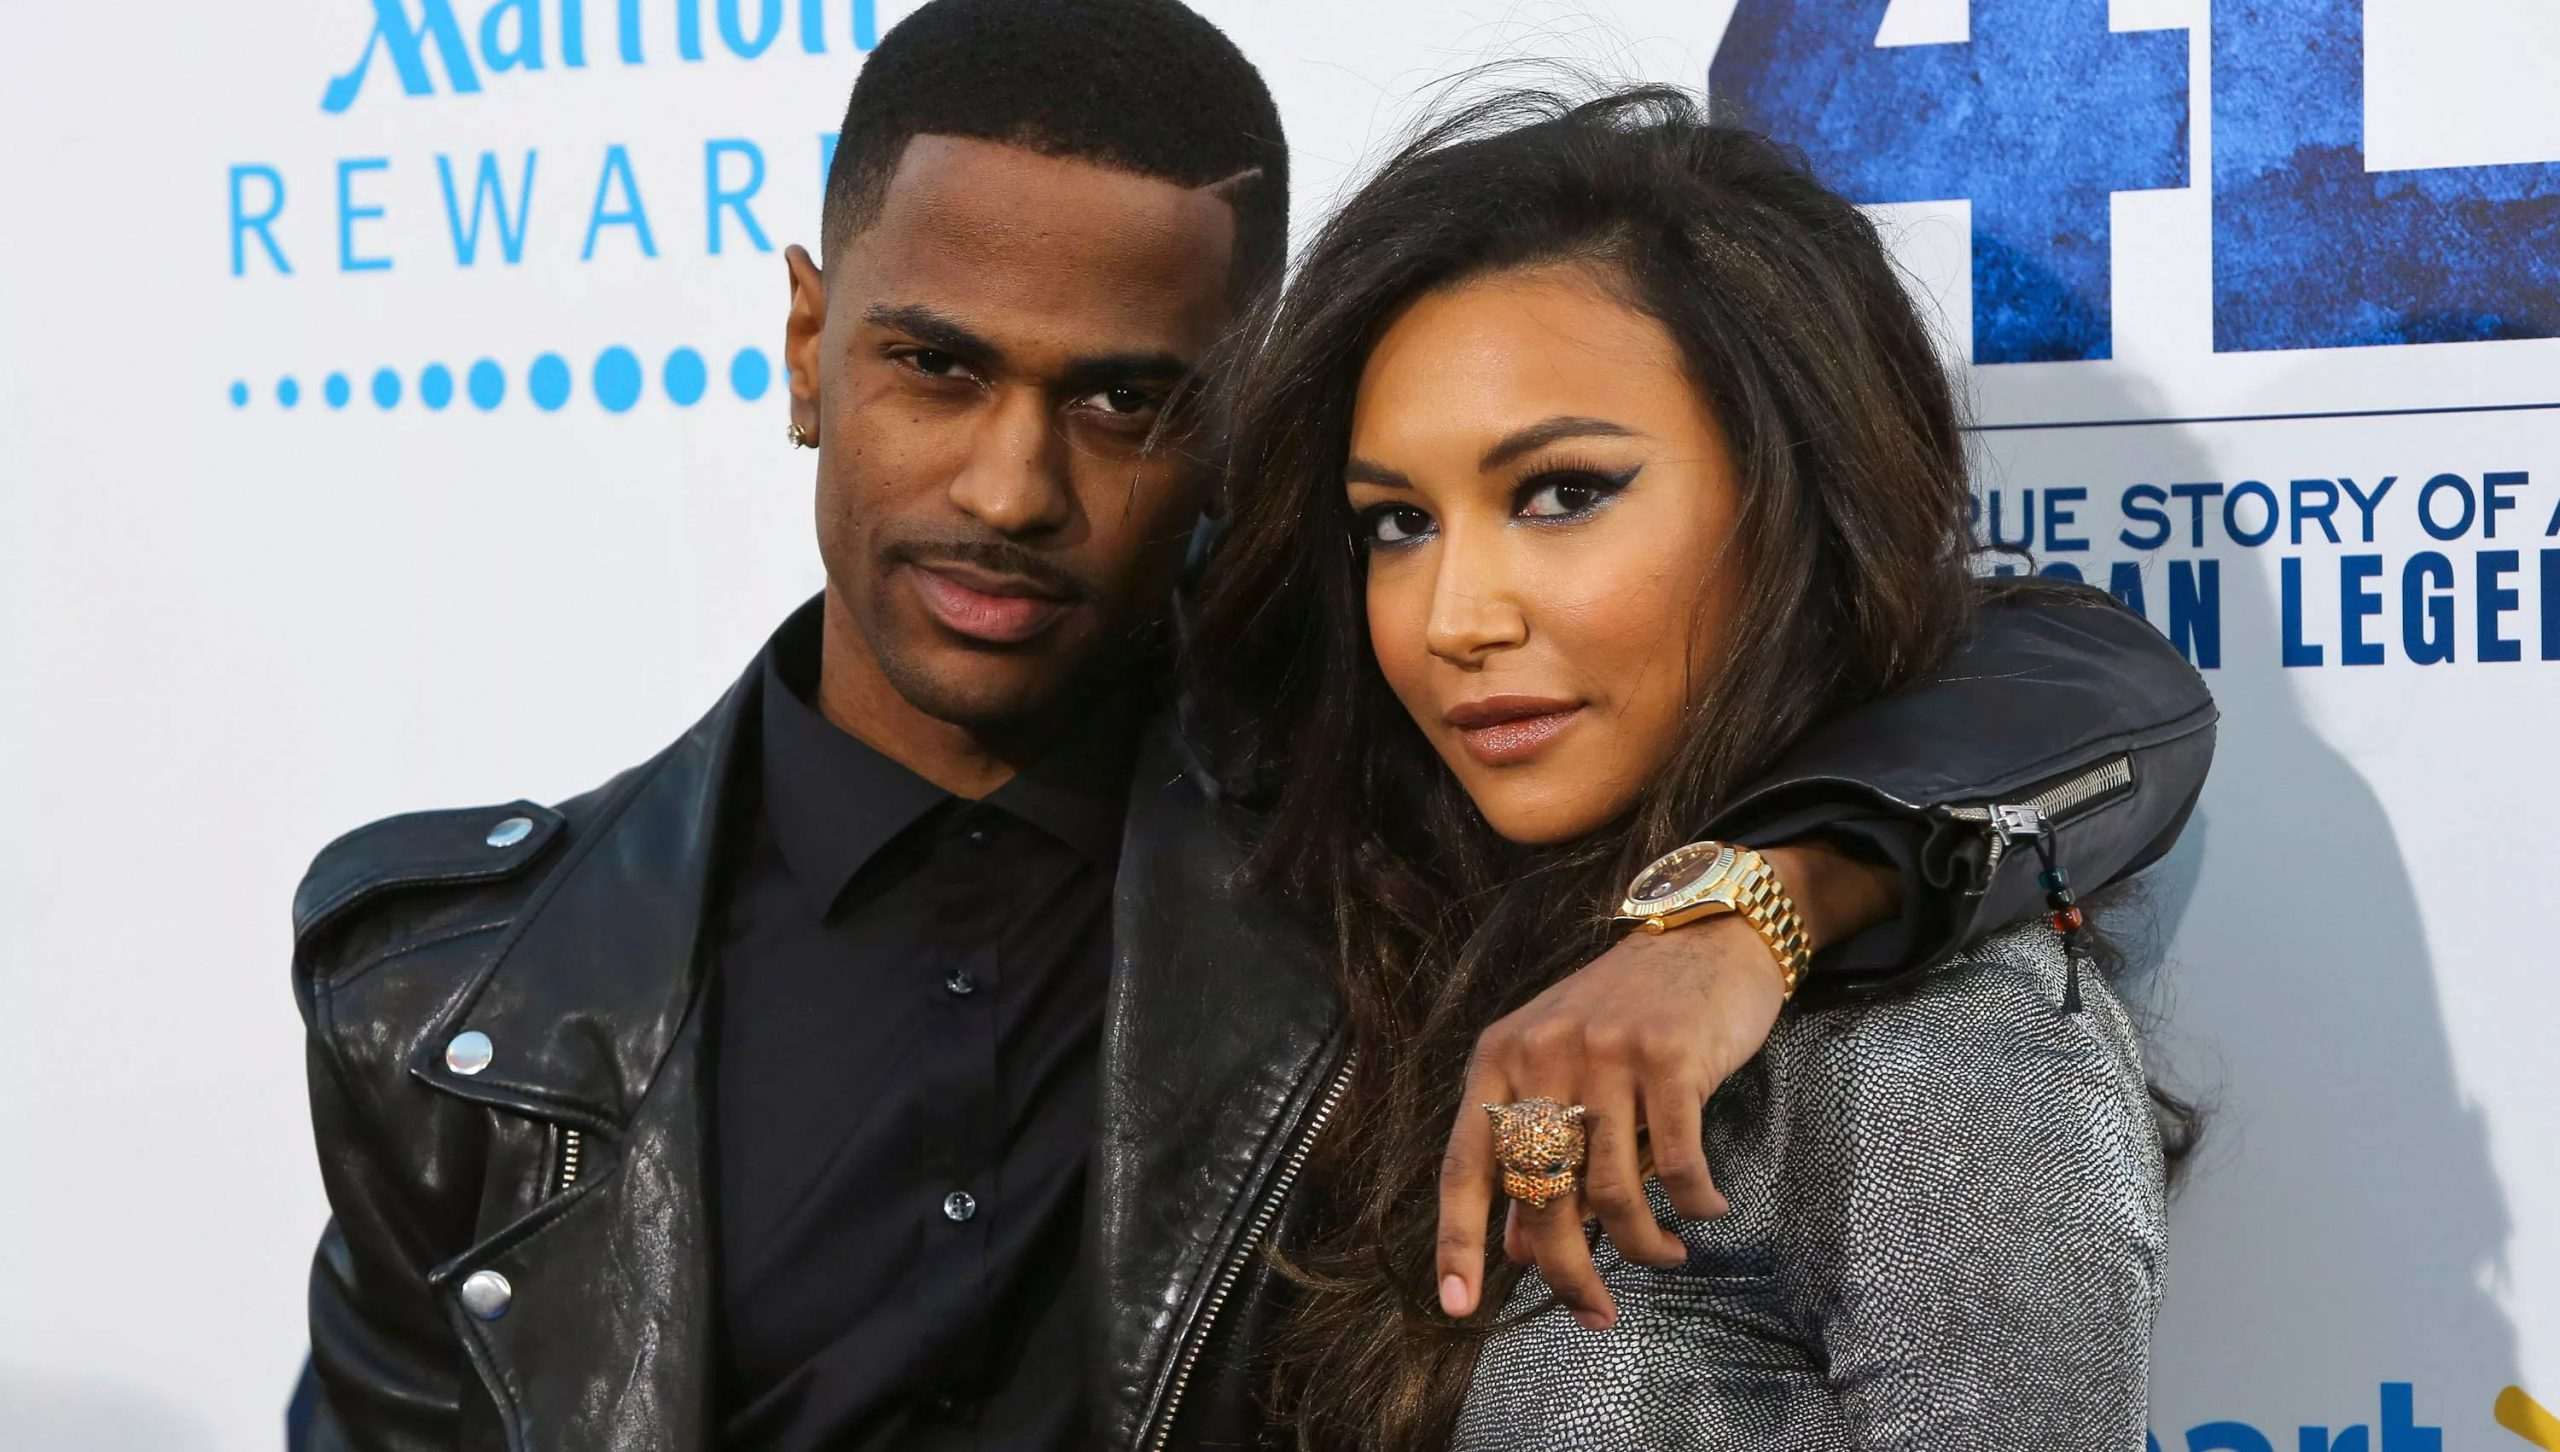 Rapper, Big Sean Pens Emotional Tribute To His Ex-fiancée Naya Rivera After Her Tragic Death